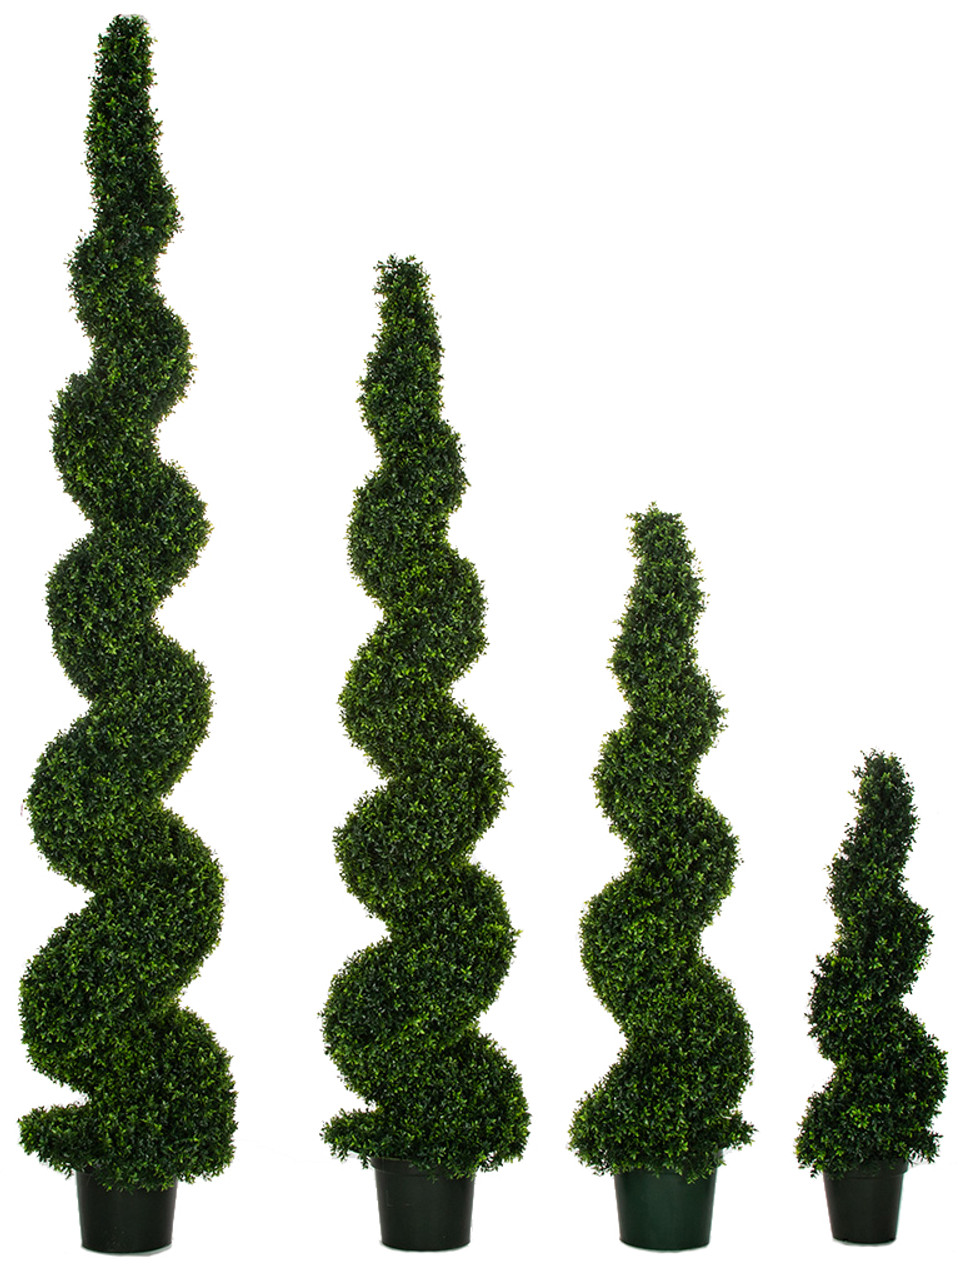 Uv Dwarf English Boxwood Spiral Topiary 4 Foot 6 Foot 8 Foot And 10 Foot Autograph Foliages